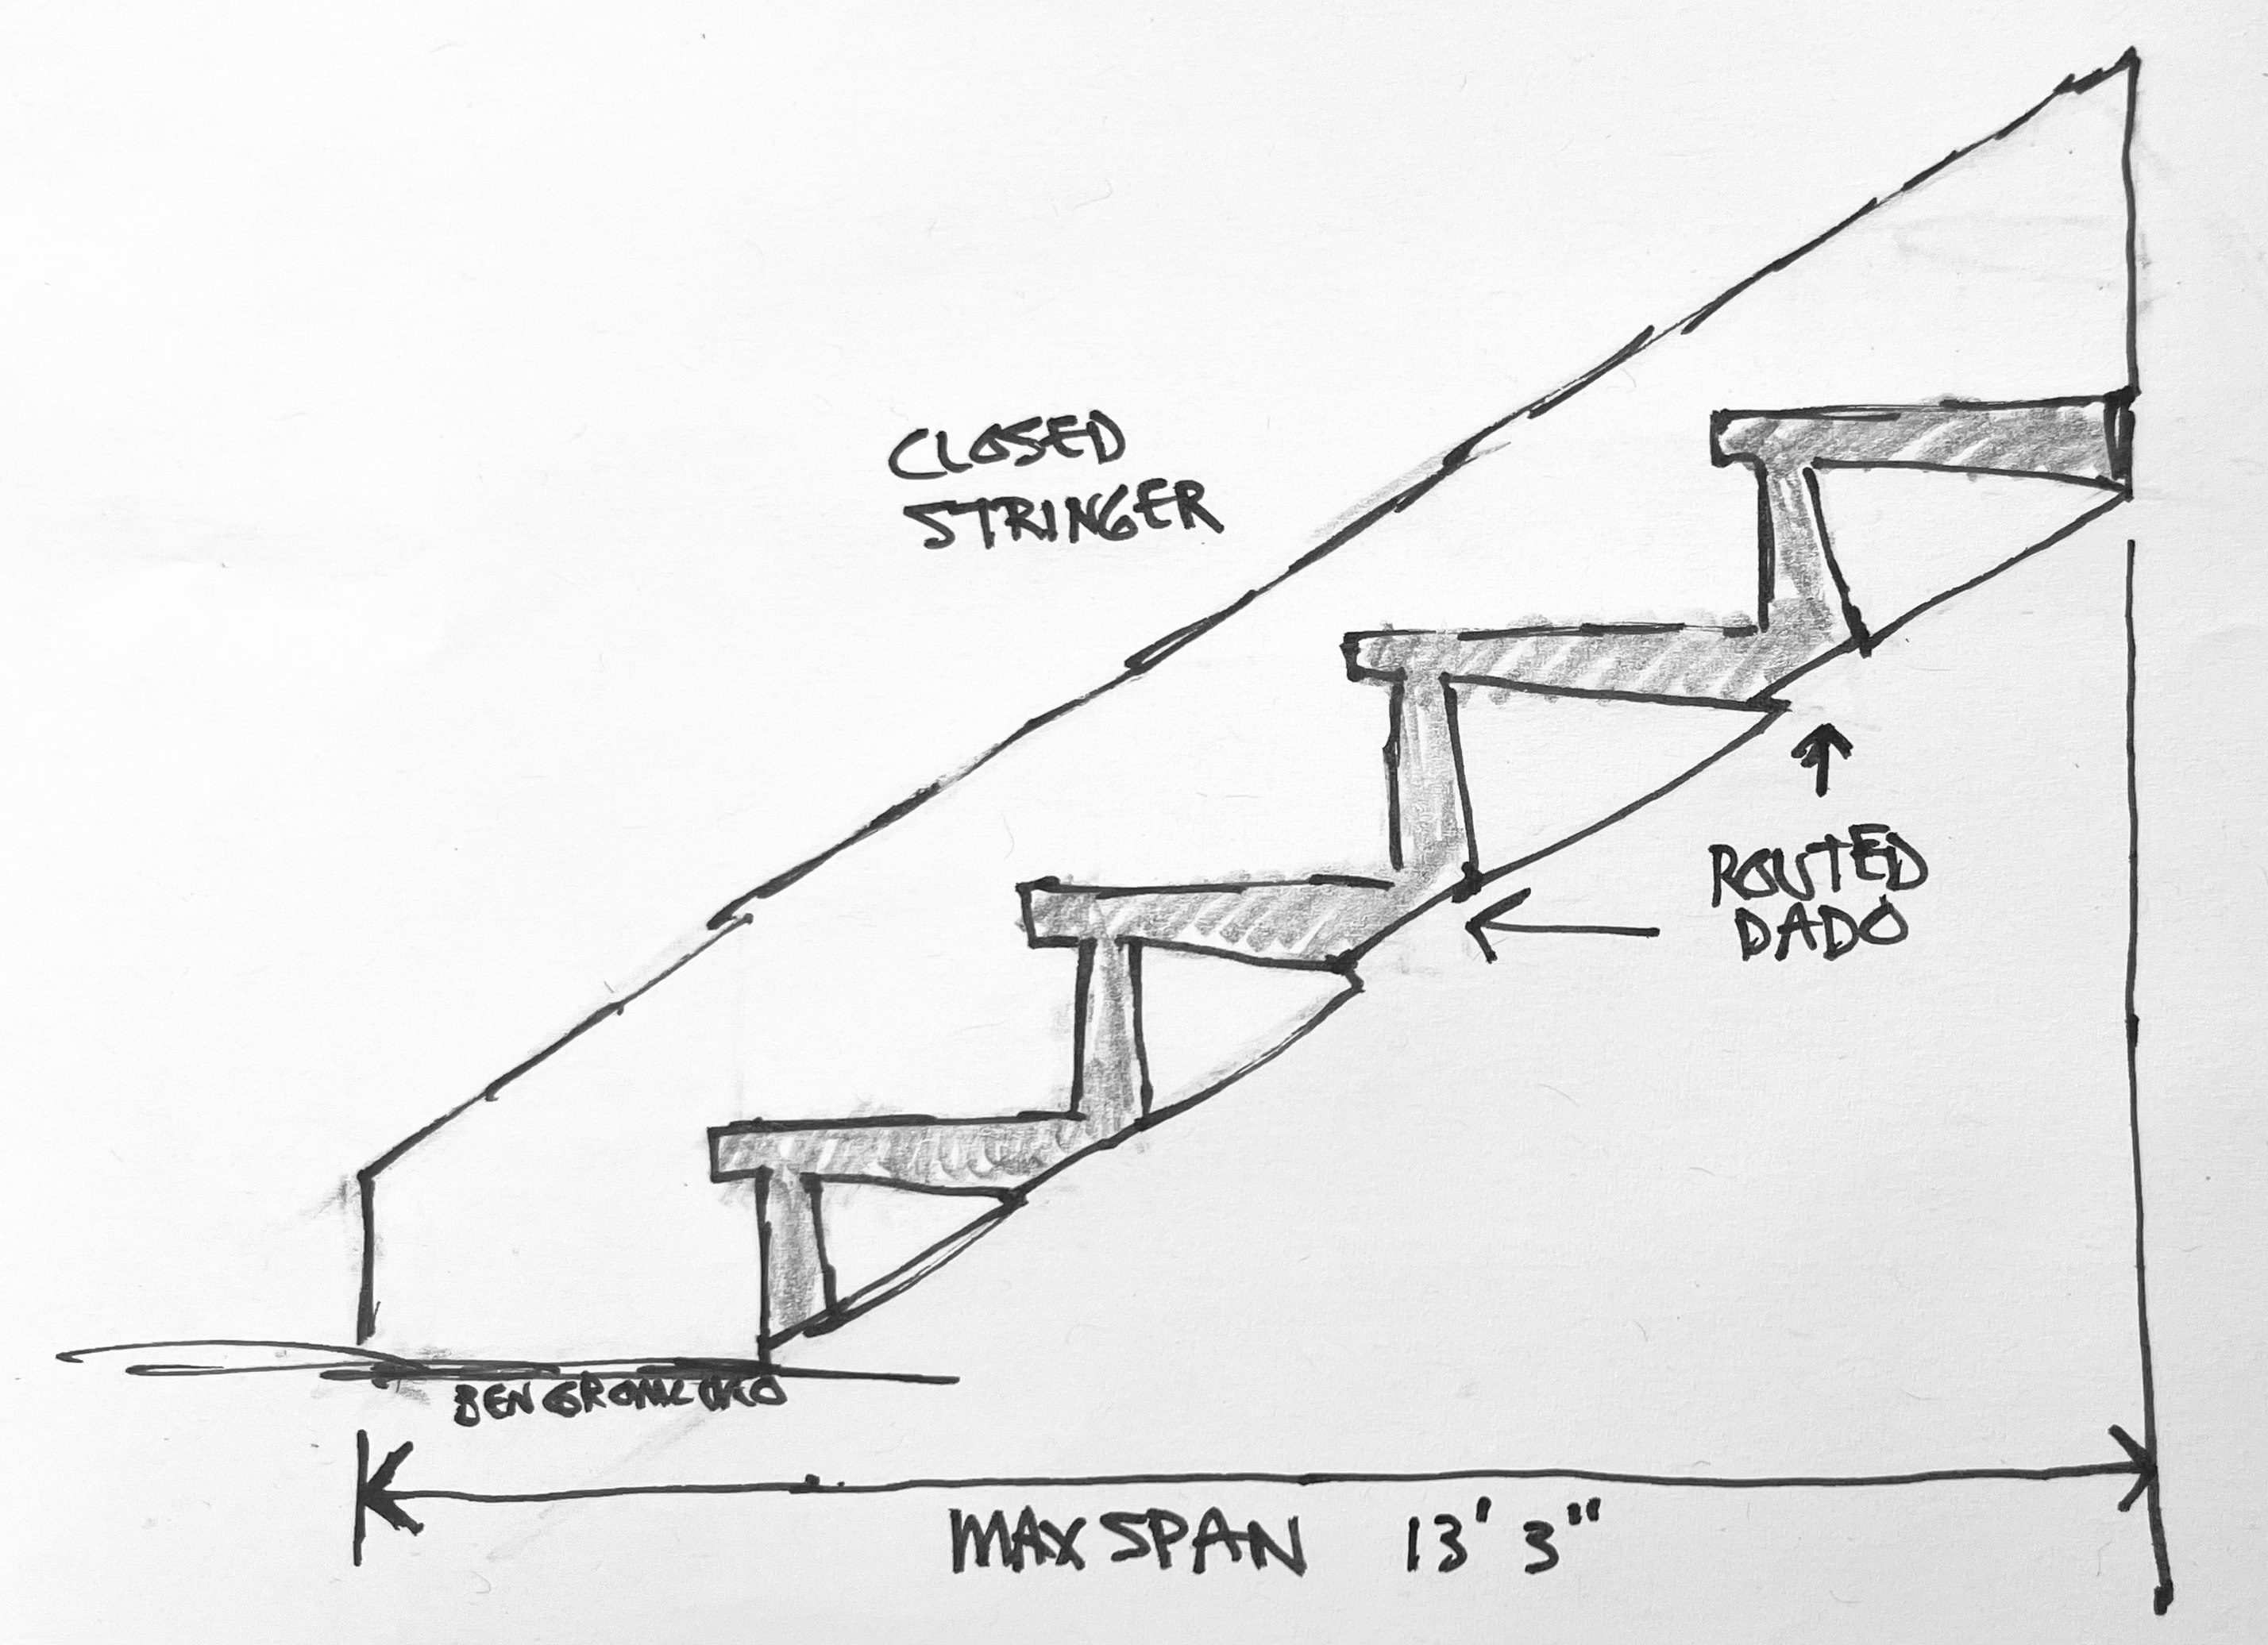 Stair stringers should not span more than 13 feet and 3 inches (4039 mm) for a closed stringer.